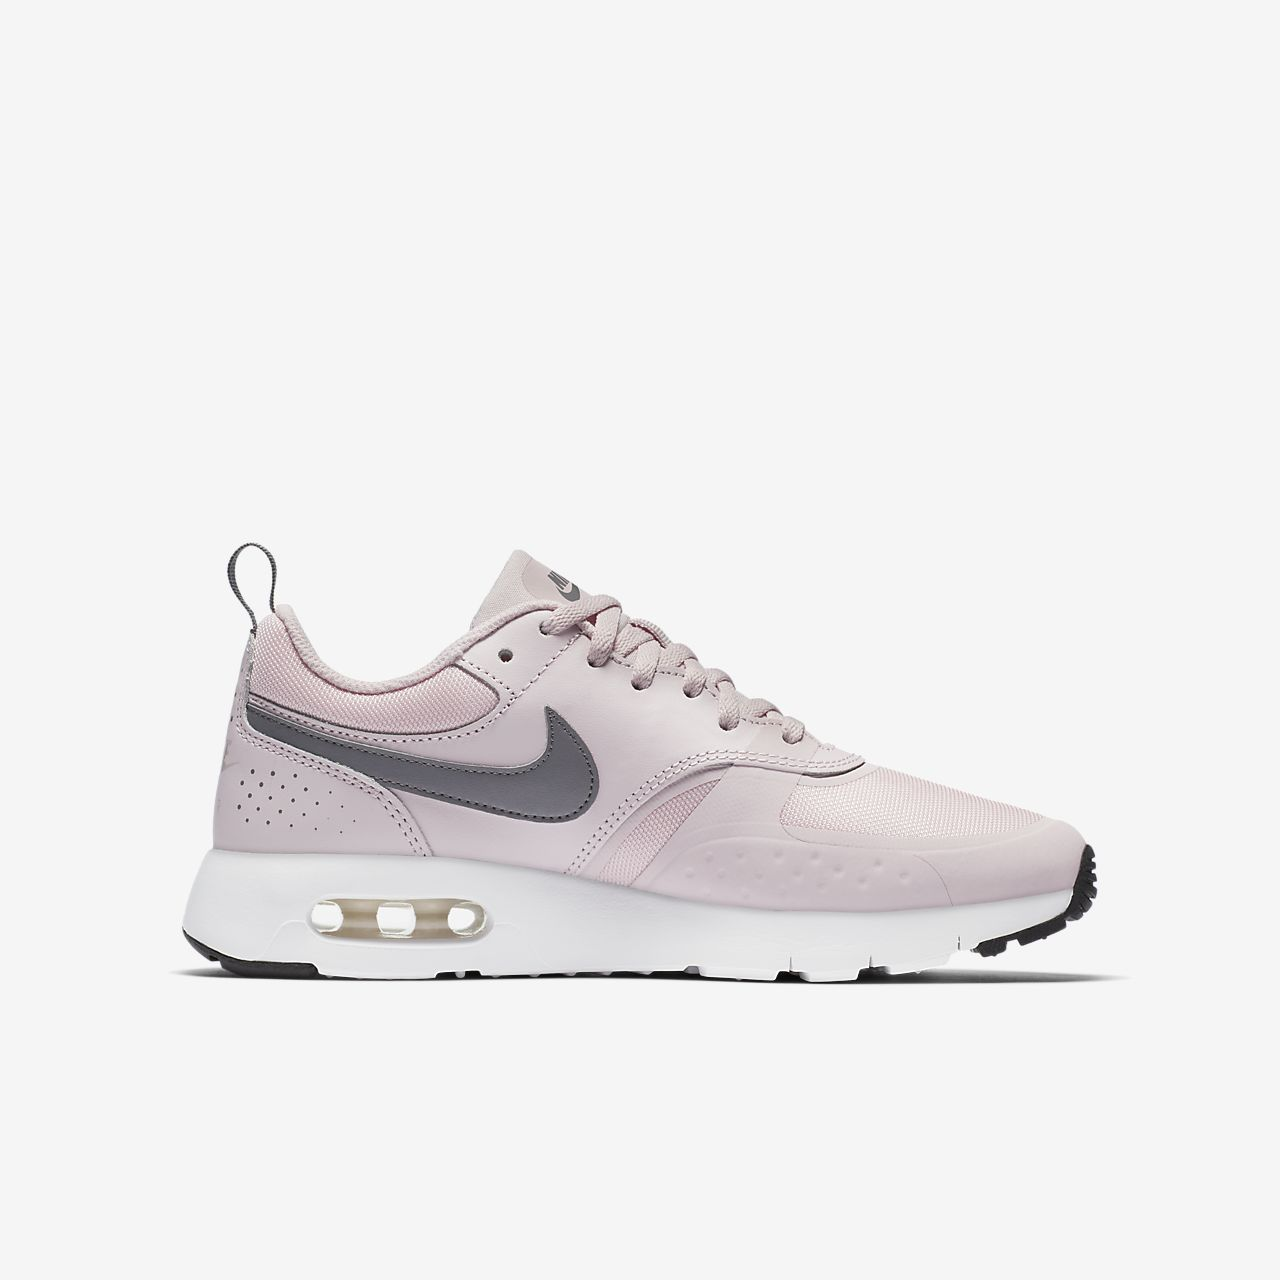 nike air max pink and grey vision trainers sale